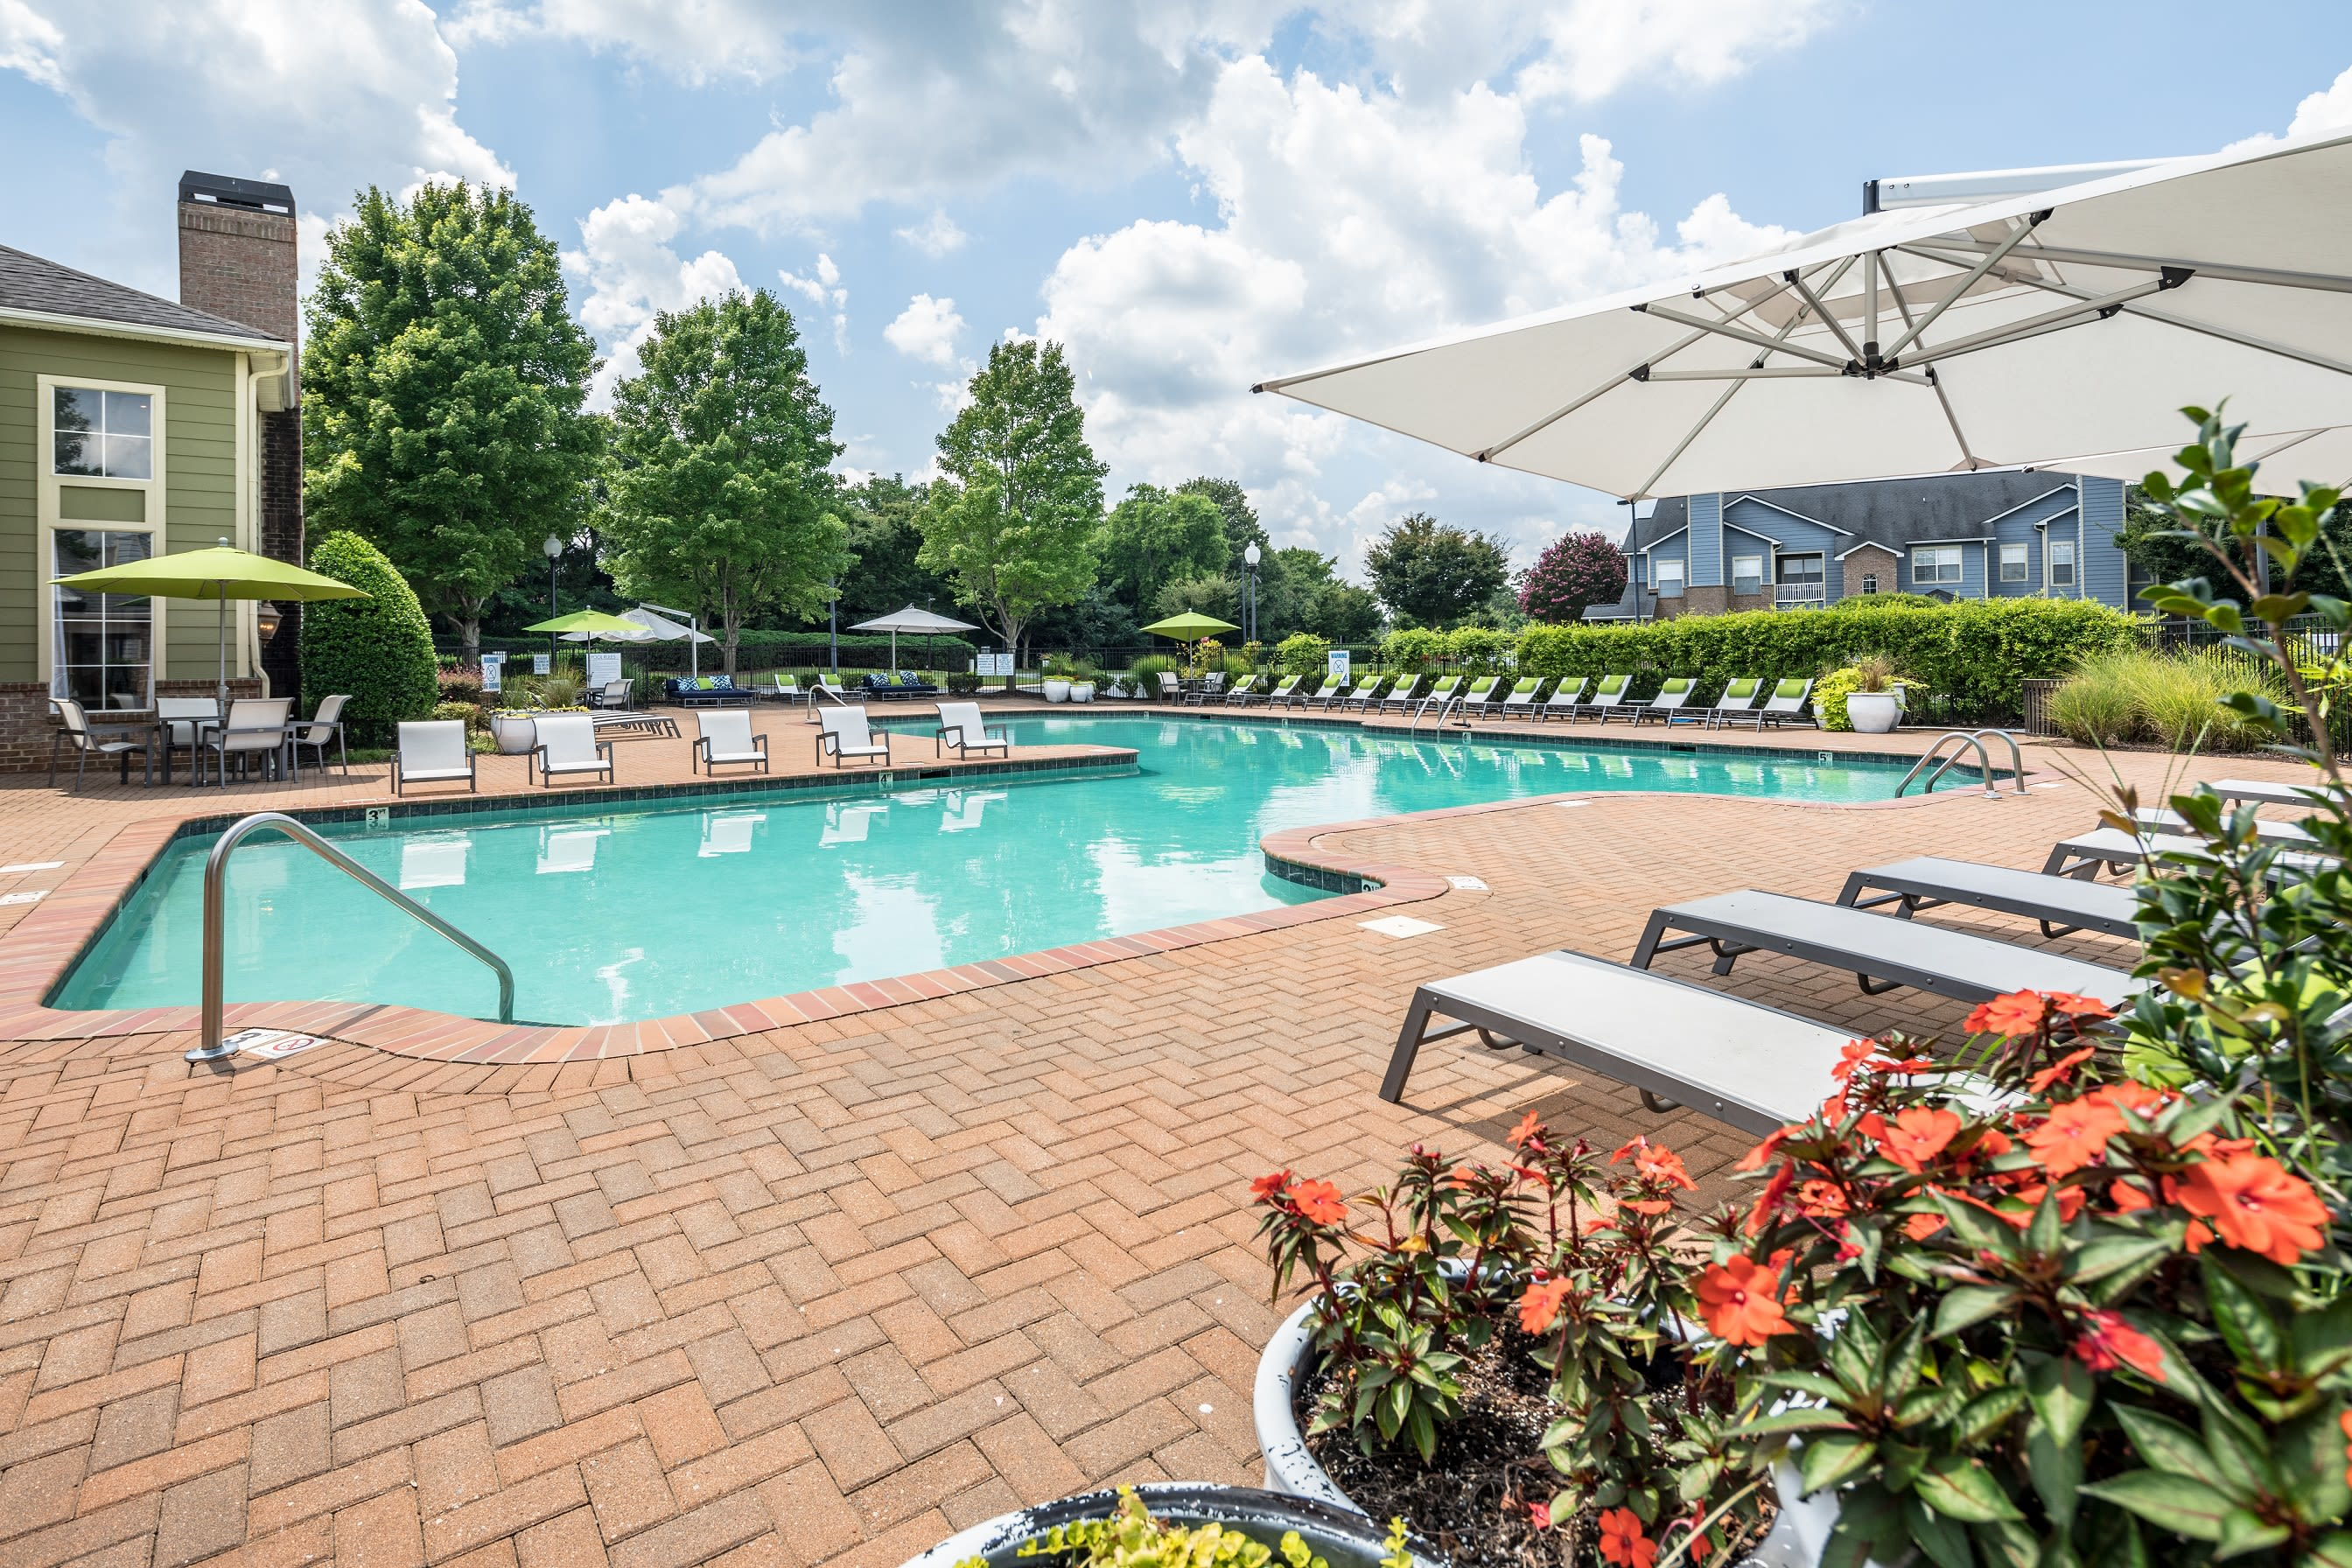 Plenty of seating by the pool at Highlands at Alexander Pointe in Charlotte, North Carolina